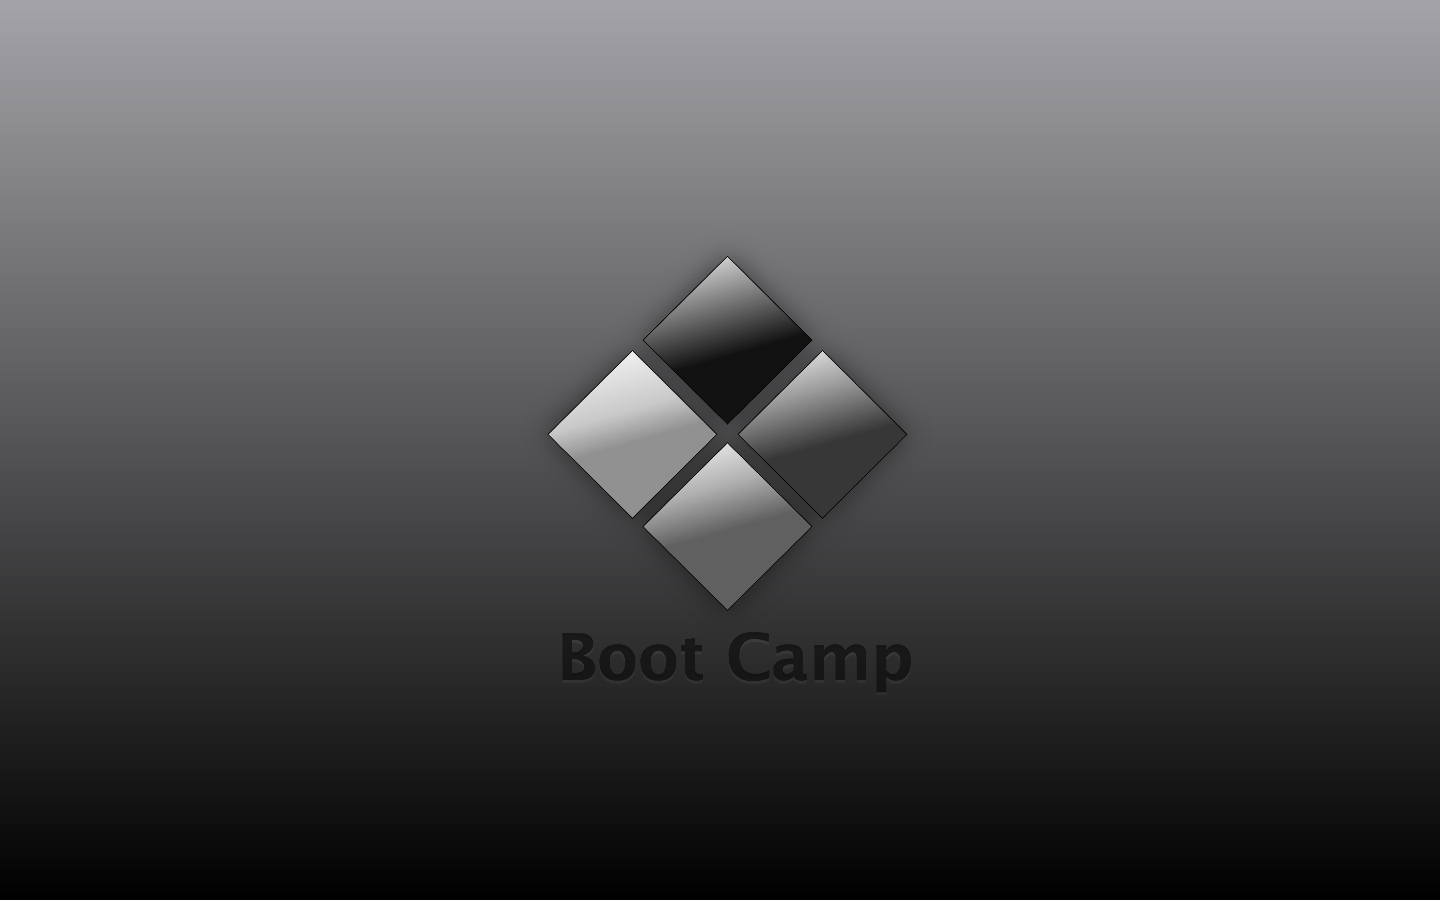 BootCamp Wallpaper by murder0210 on DeviantArt